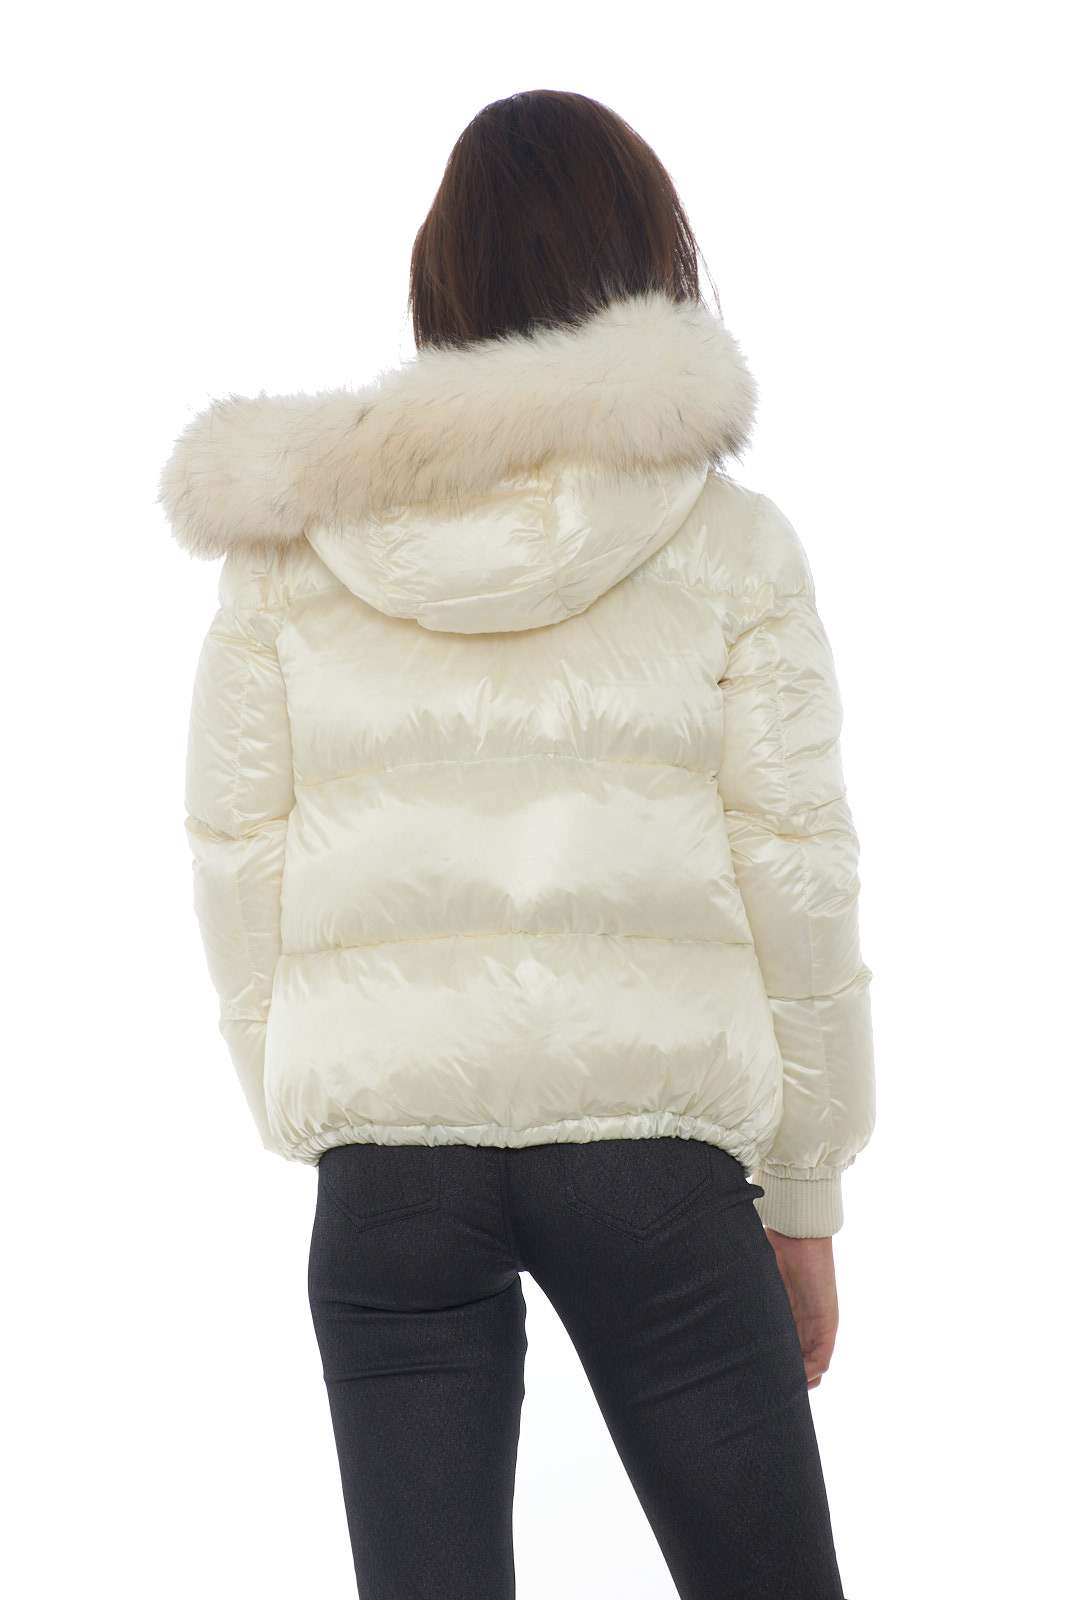 https://www.parmax.com/media/catalog/product/a/i/AI-outlet_parmax-giubbino-donna-FreedomDay-ifrw6020n-C.jpg